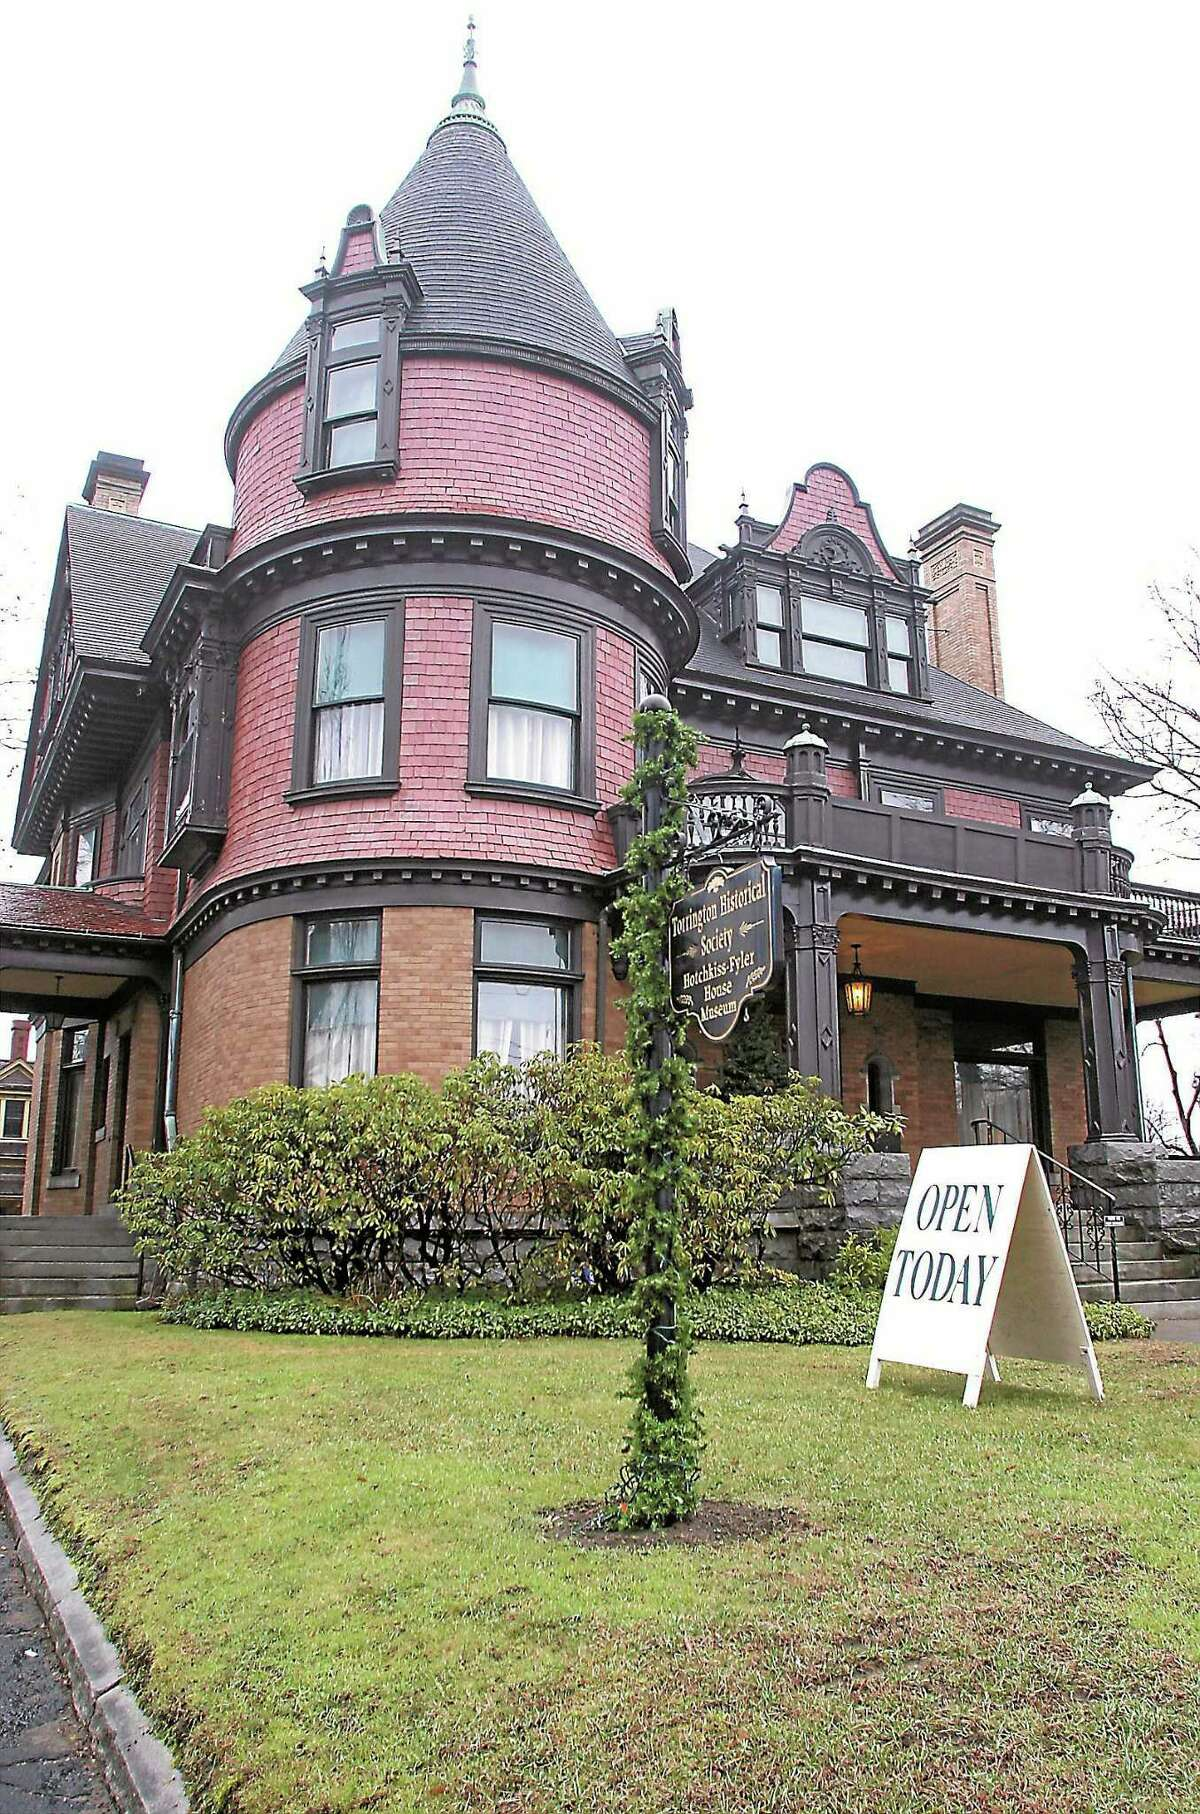 Contributed photos - Torrington Historical Society The Hotchkiss-Fyler House on Main Street will open for holiday tours on Saturday, Dec. 10, and will remain open through Dec. 30.